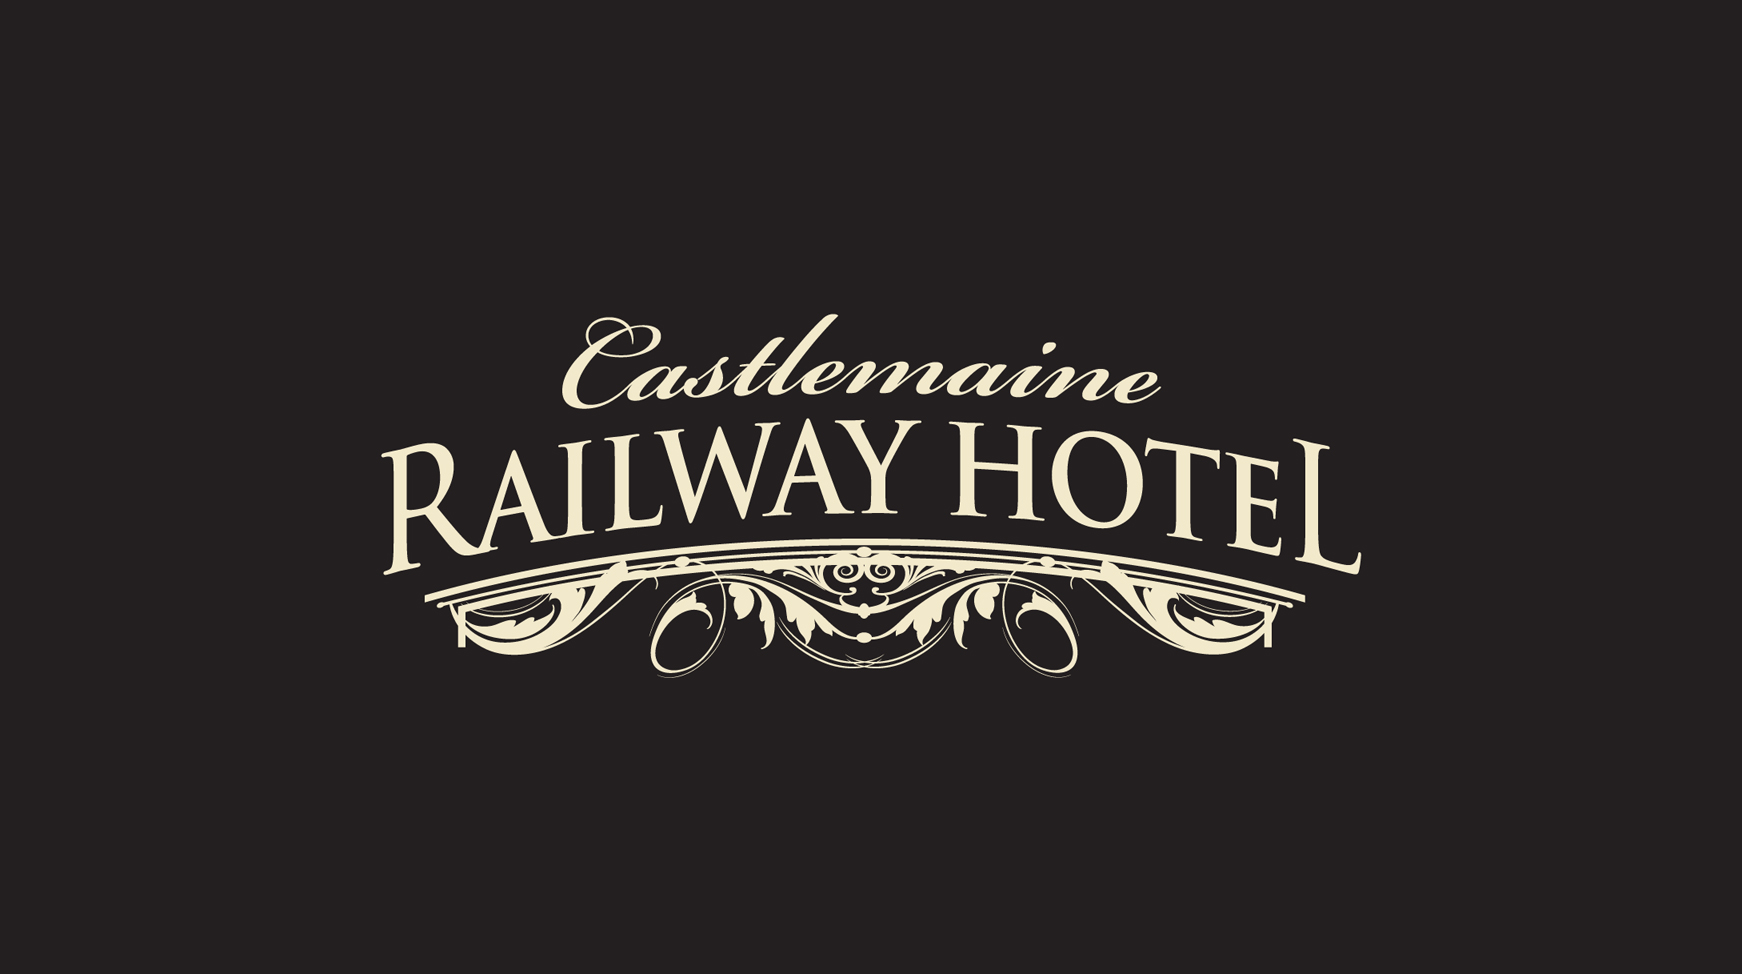 Railway Hotel Castlemaine - Nambucca Heads Accommodation